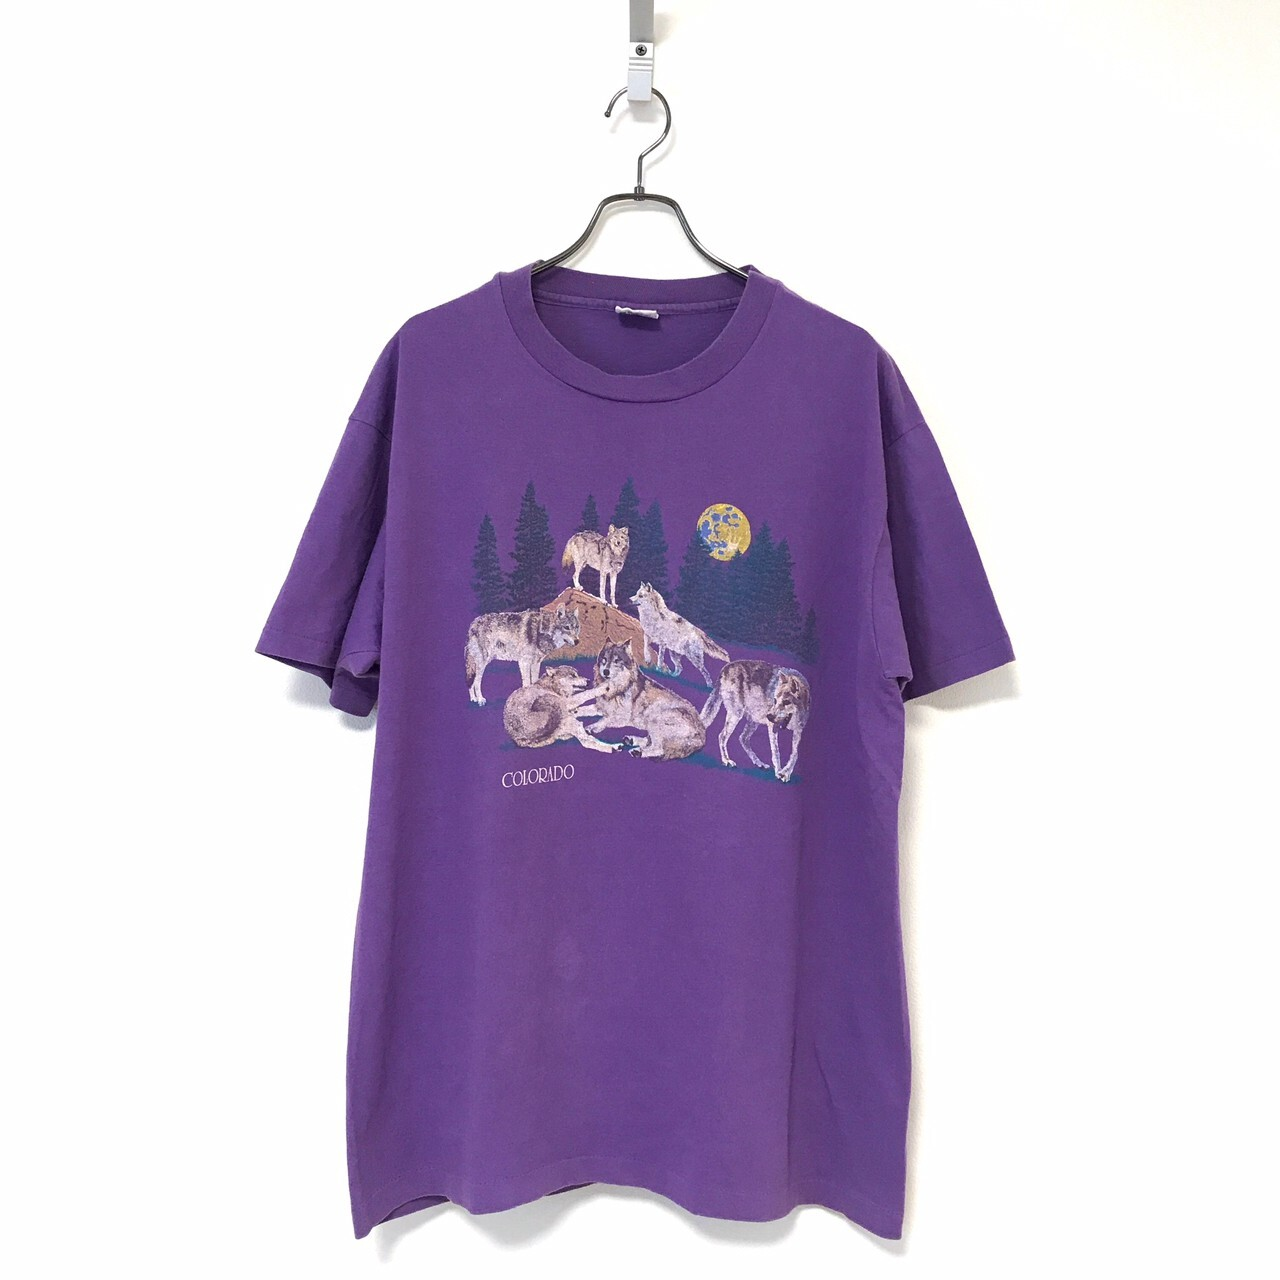 90's anvil Colorado Coyote T-shirt made in USA XL Purple